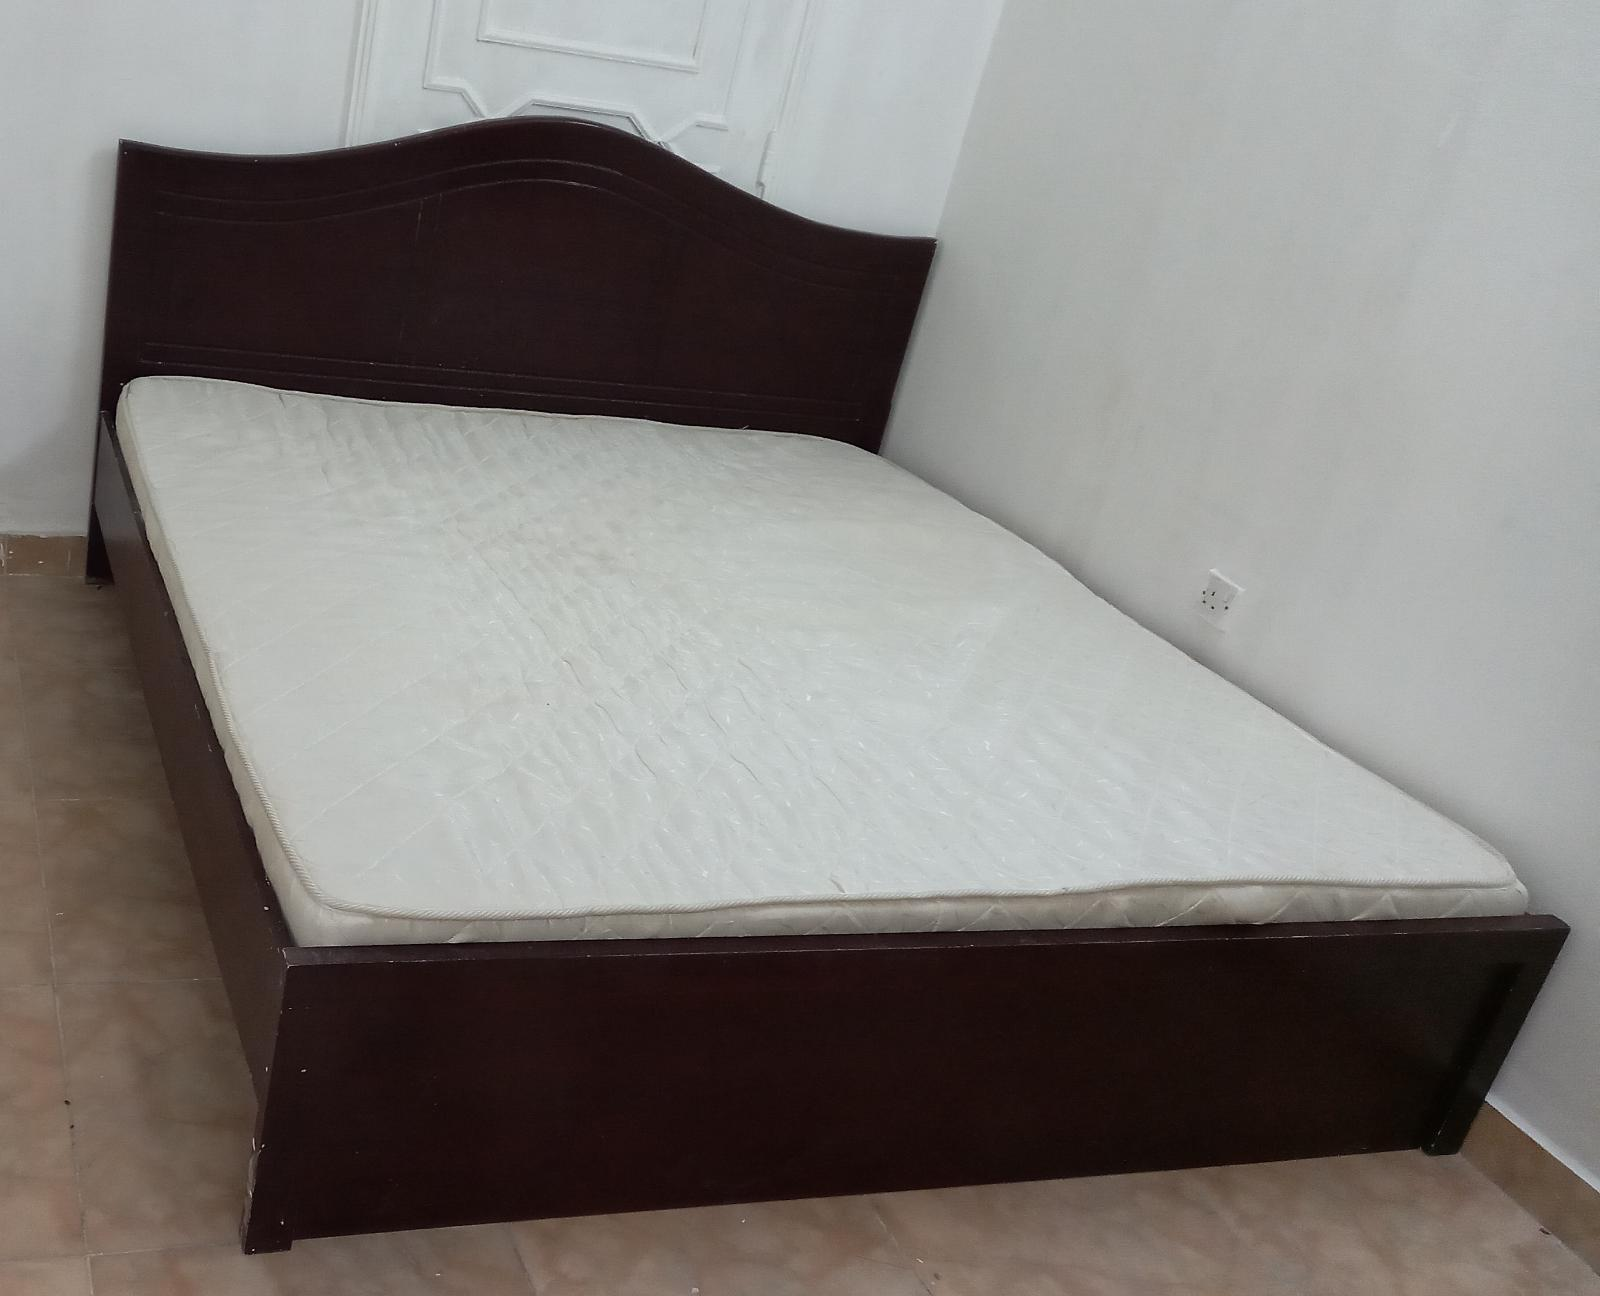 Bed with Mattress 120cm x  190cm, 150cm X 190cm &